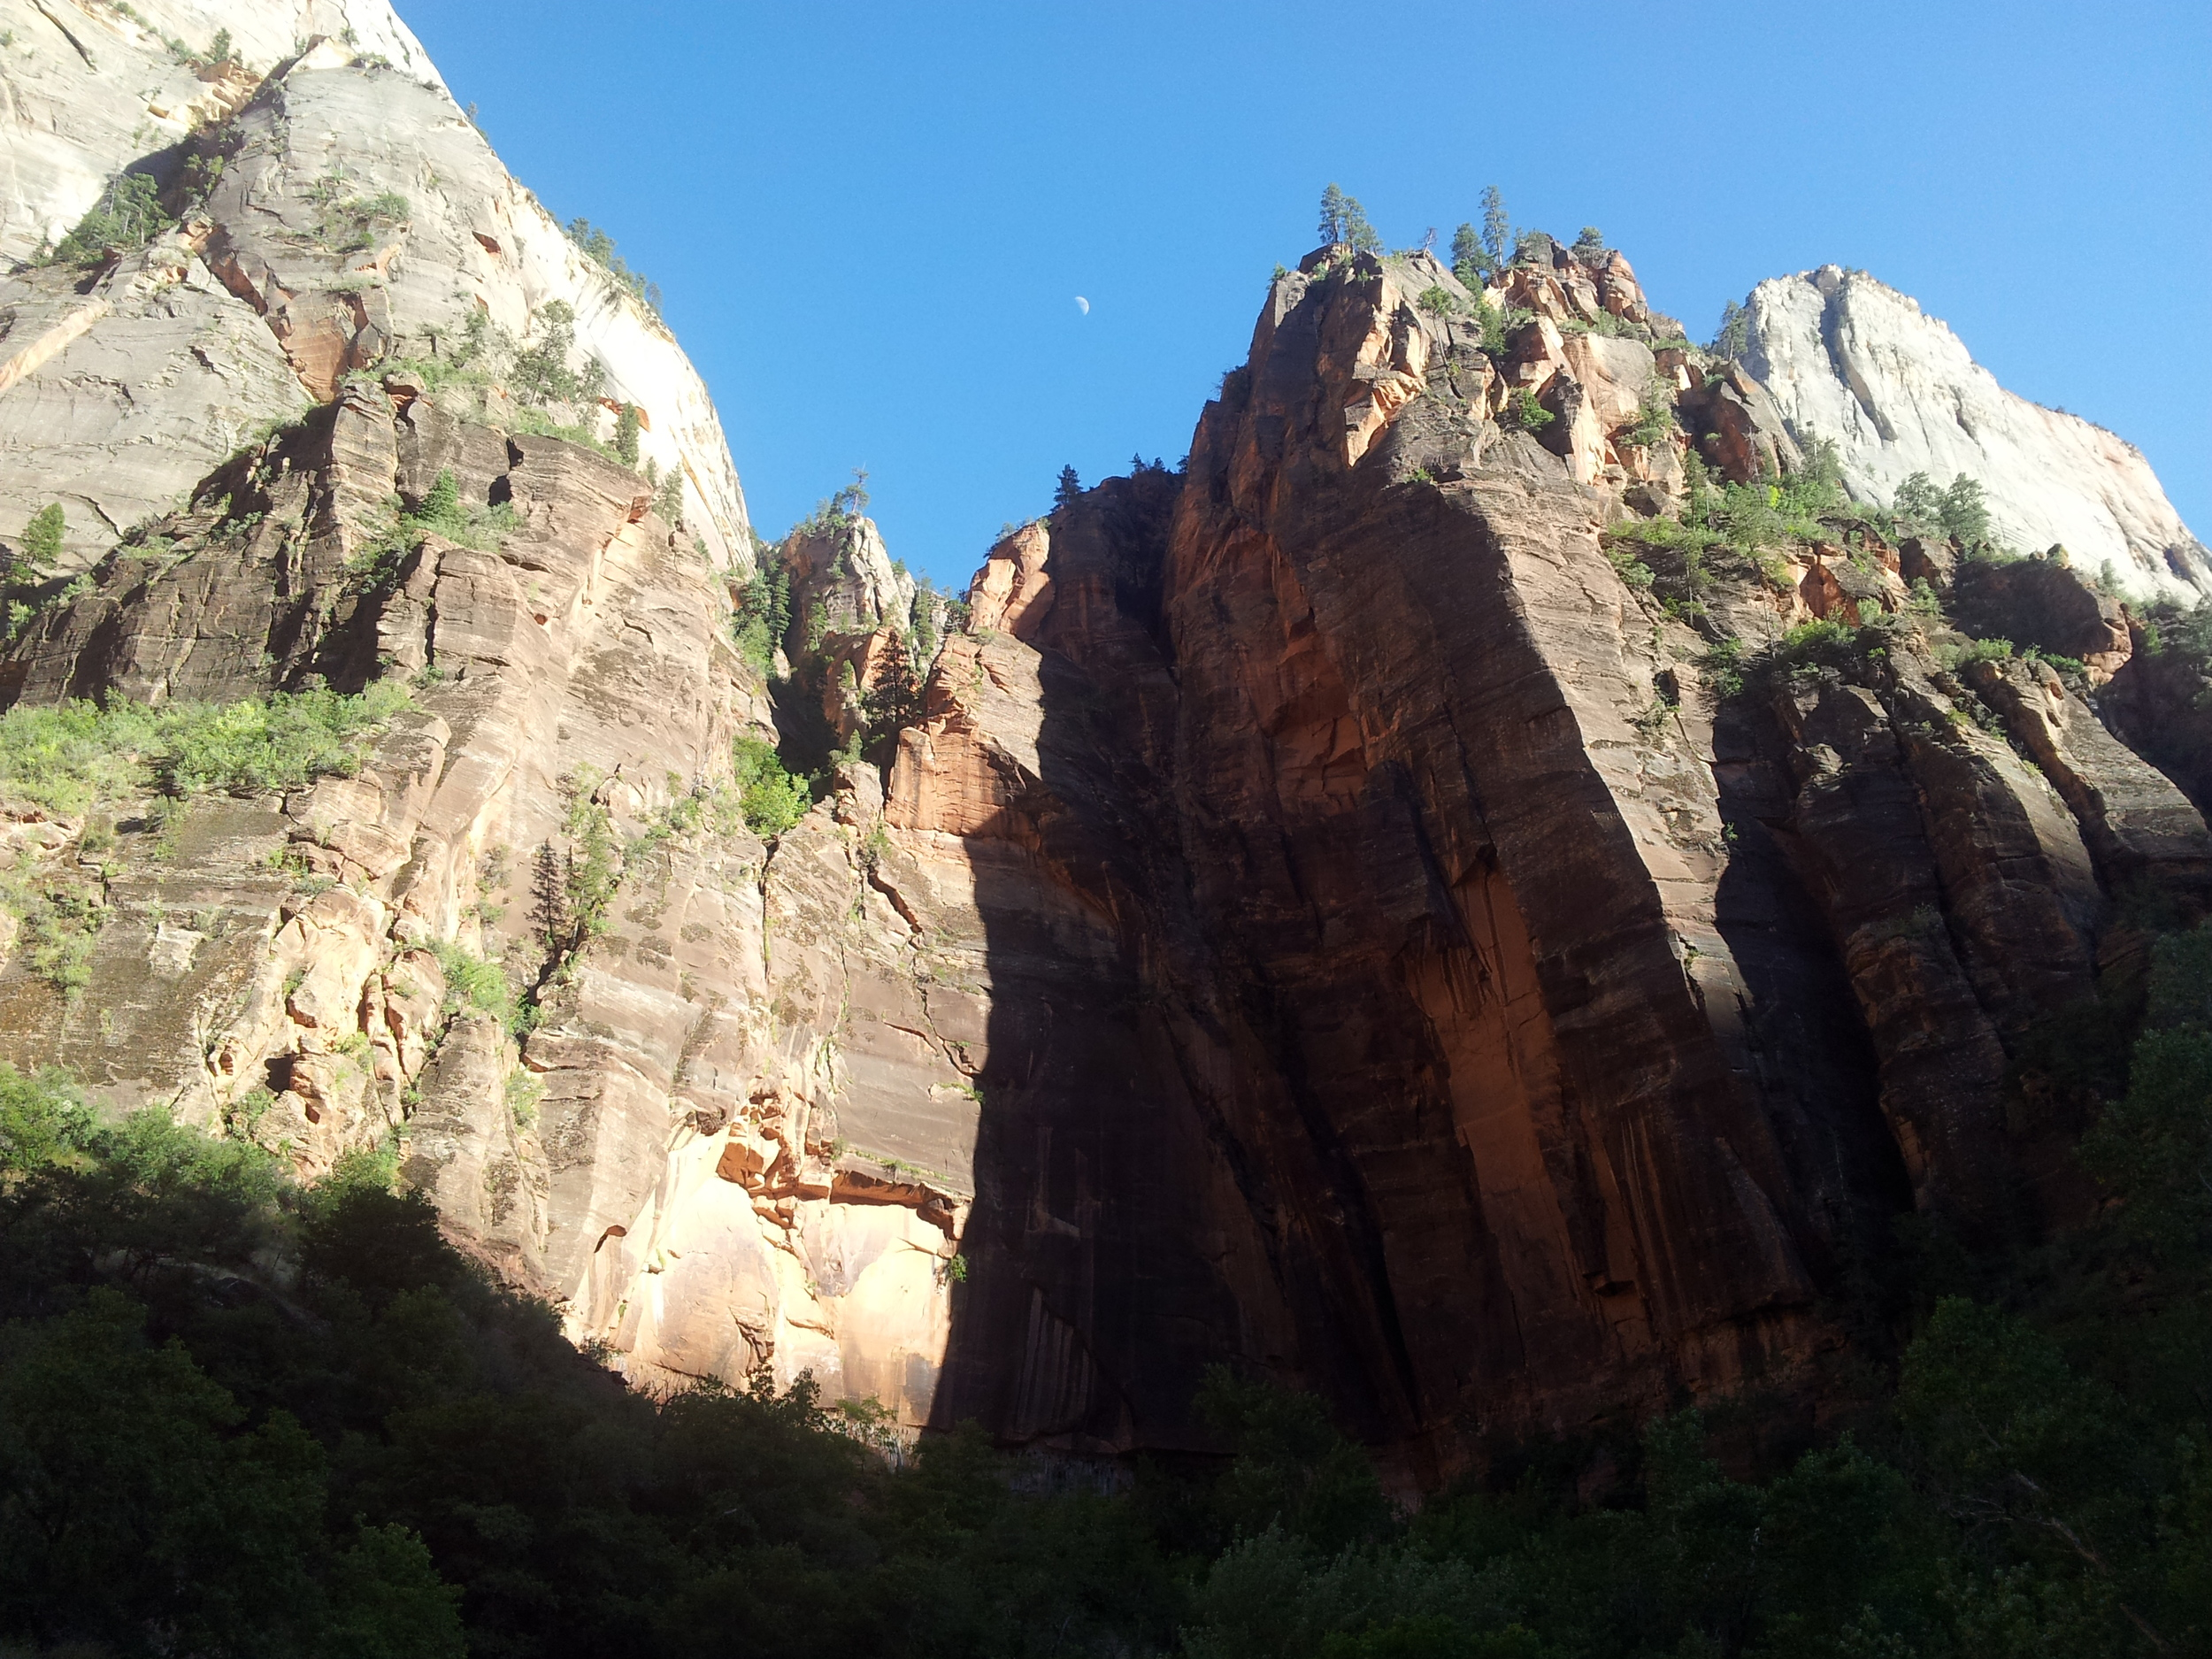 Looking up, Hidden Canyon is somewhere in a crevice up there